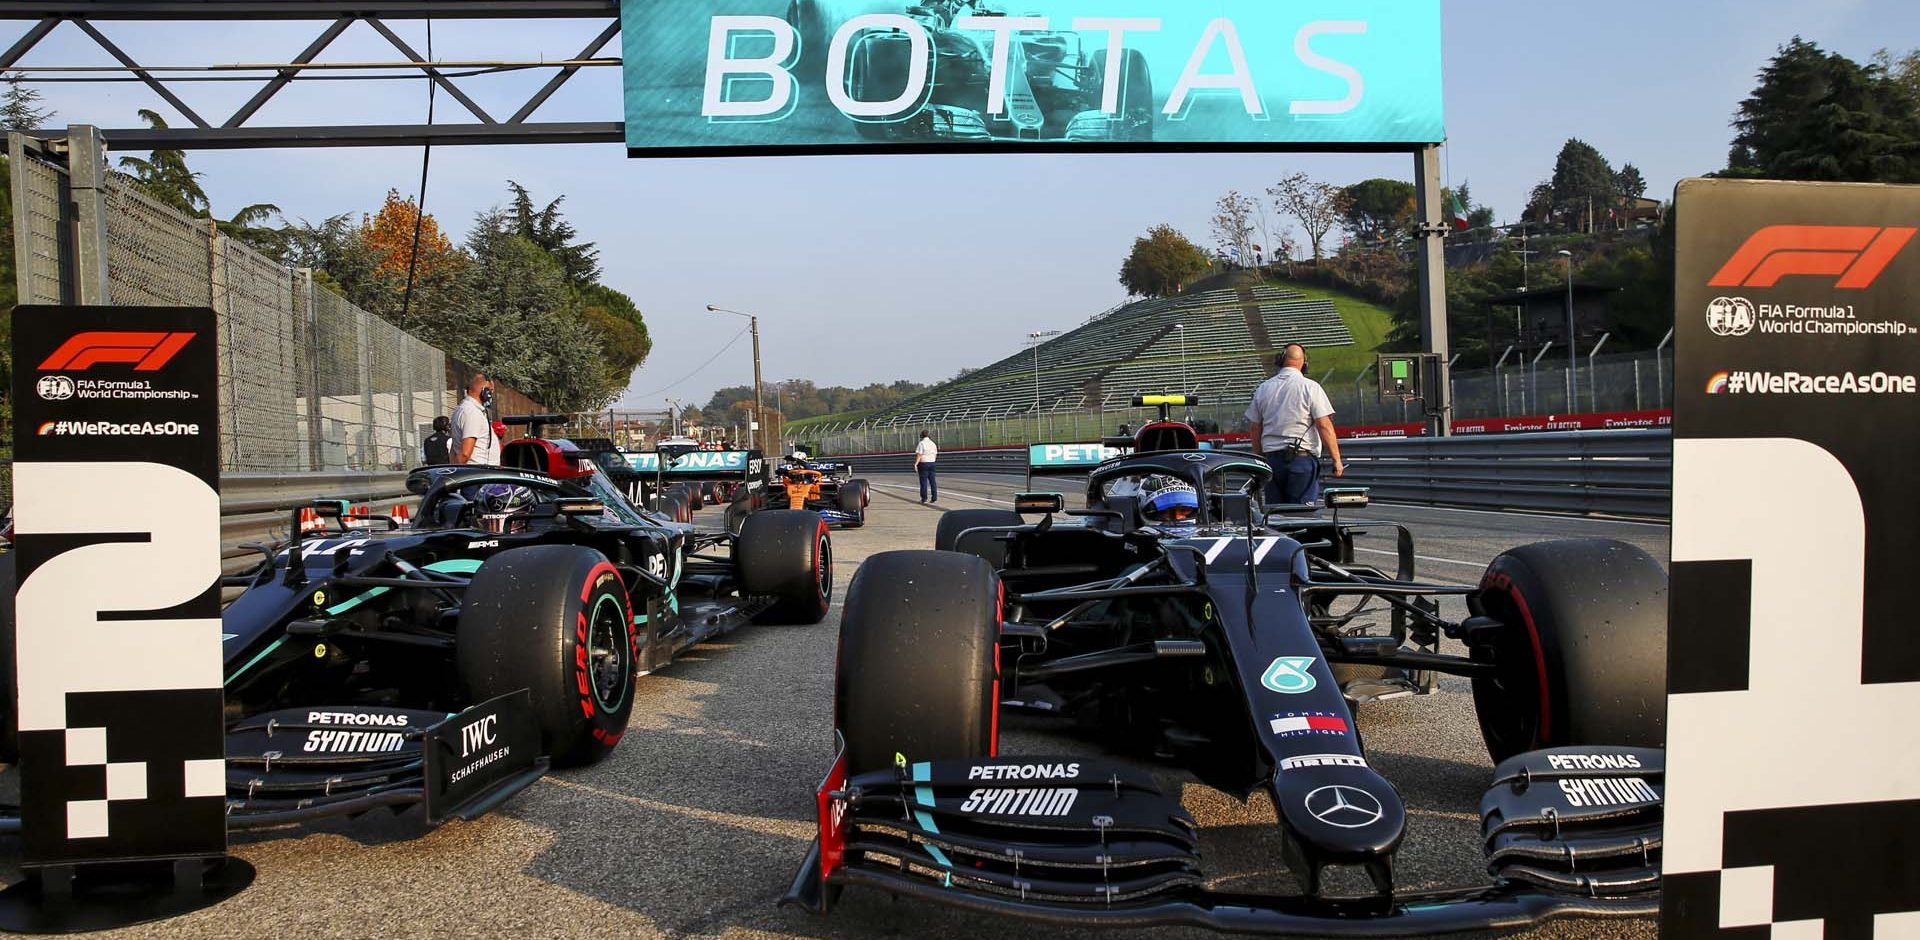 2020 Emilia Romagna Grand Prix, Saturday - LAT Images Mercedes Valtteri Bottas Lewis Hamilton